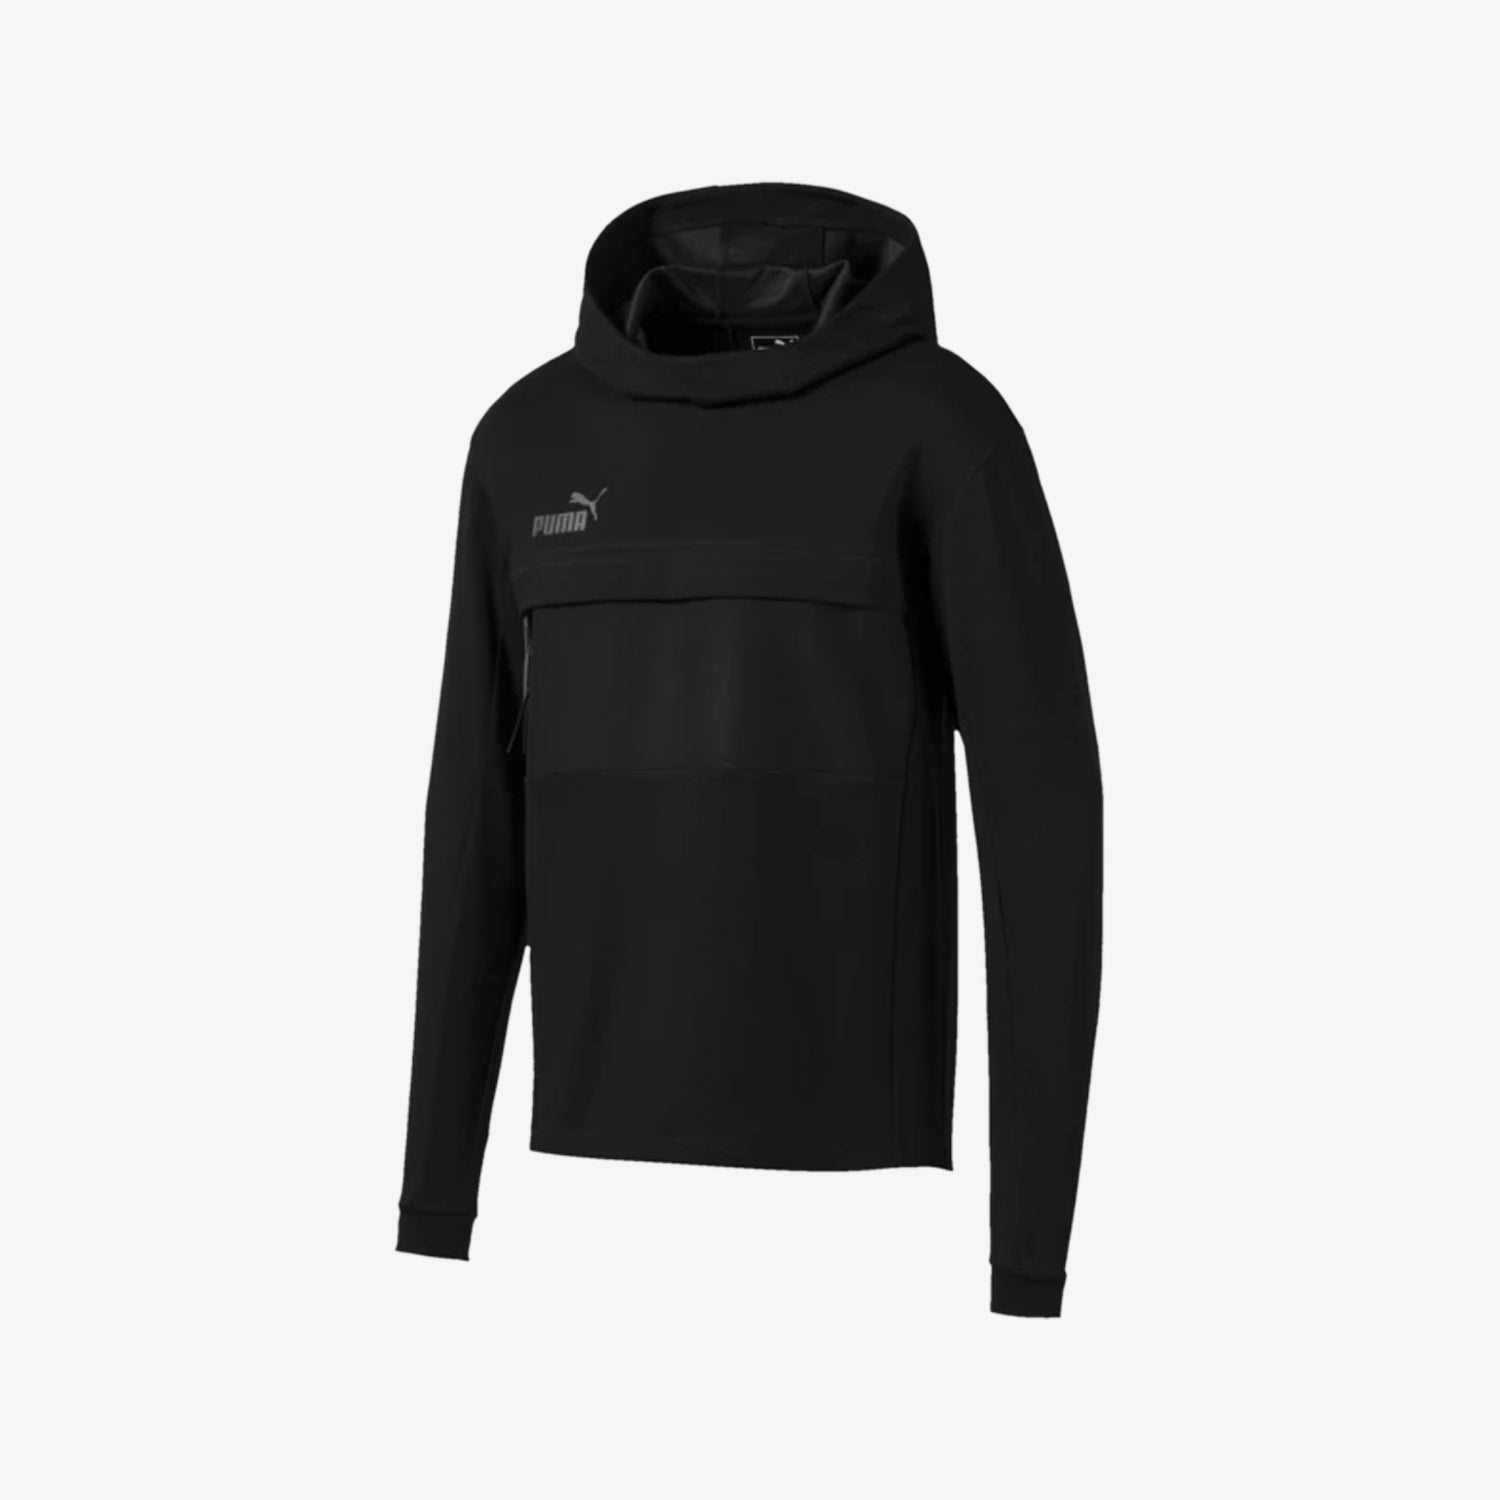 Men's Futbol Next Casuals Hoody